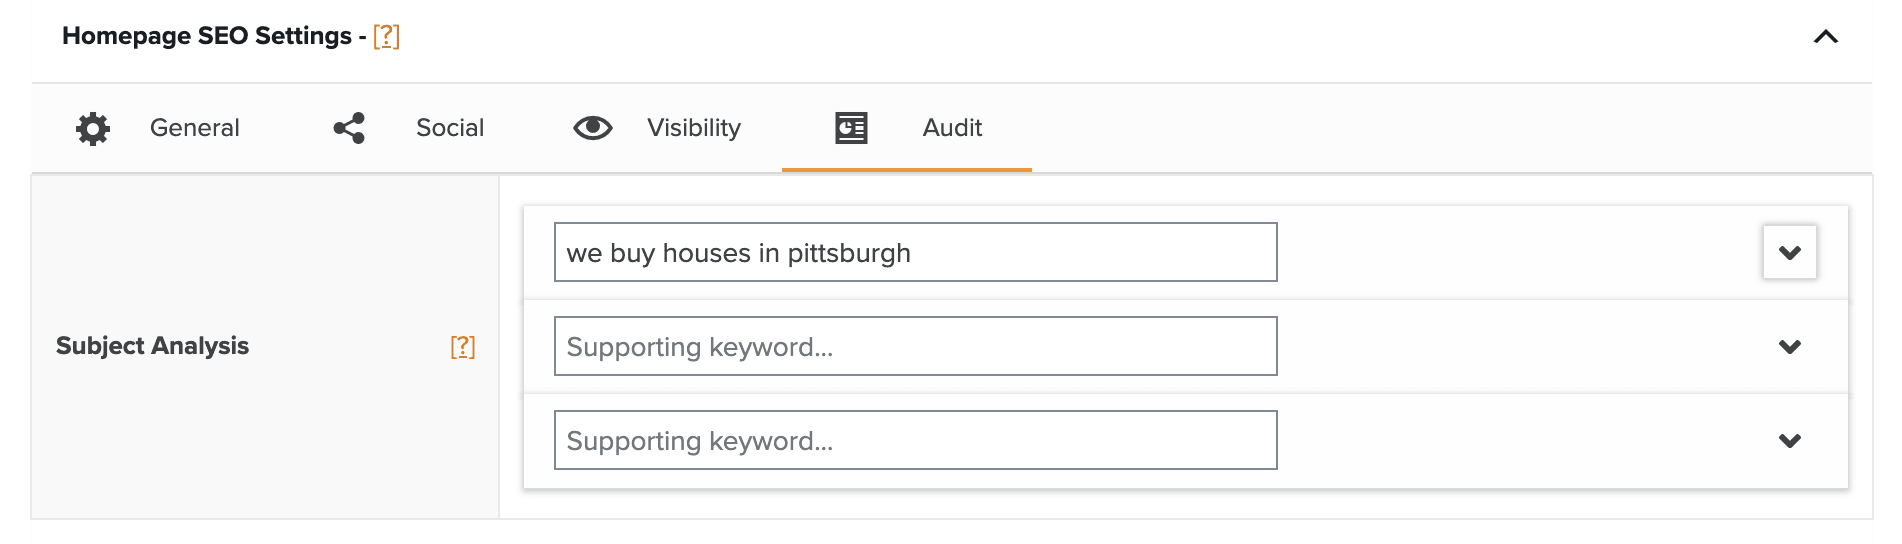 Carrot SEO for real estate tool